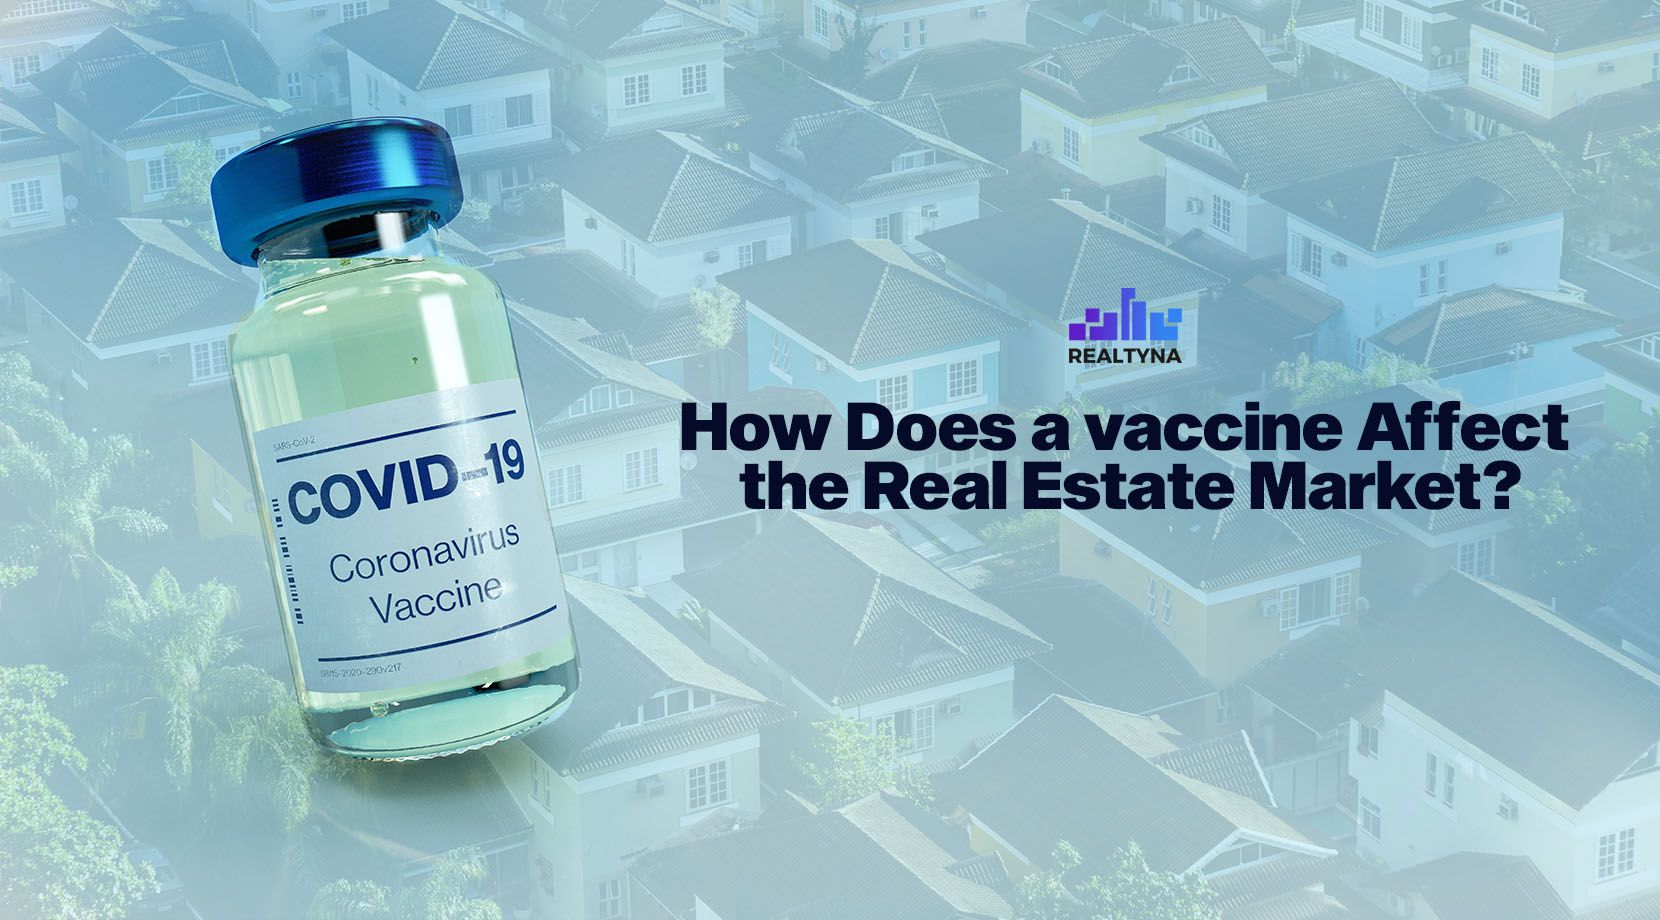 How Does a Vaccine Affect the Real Estate Market?